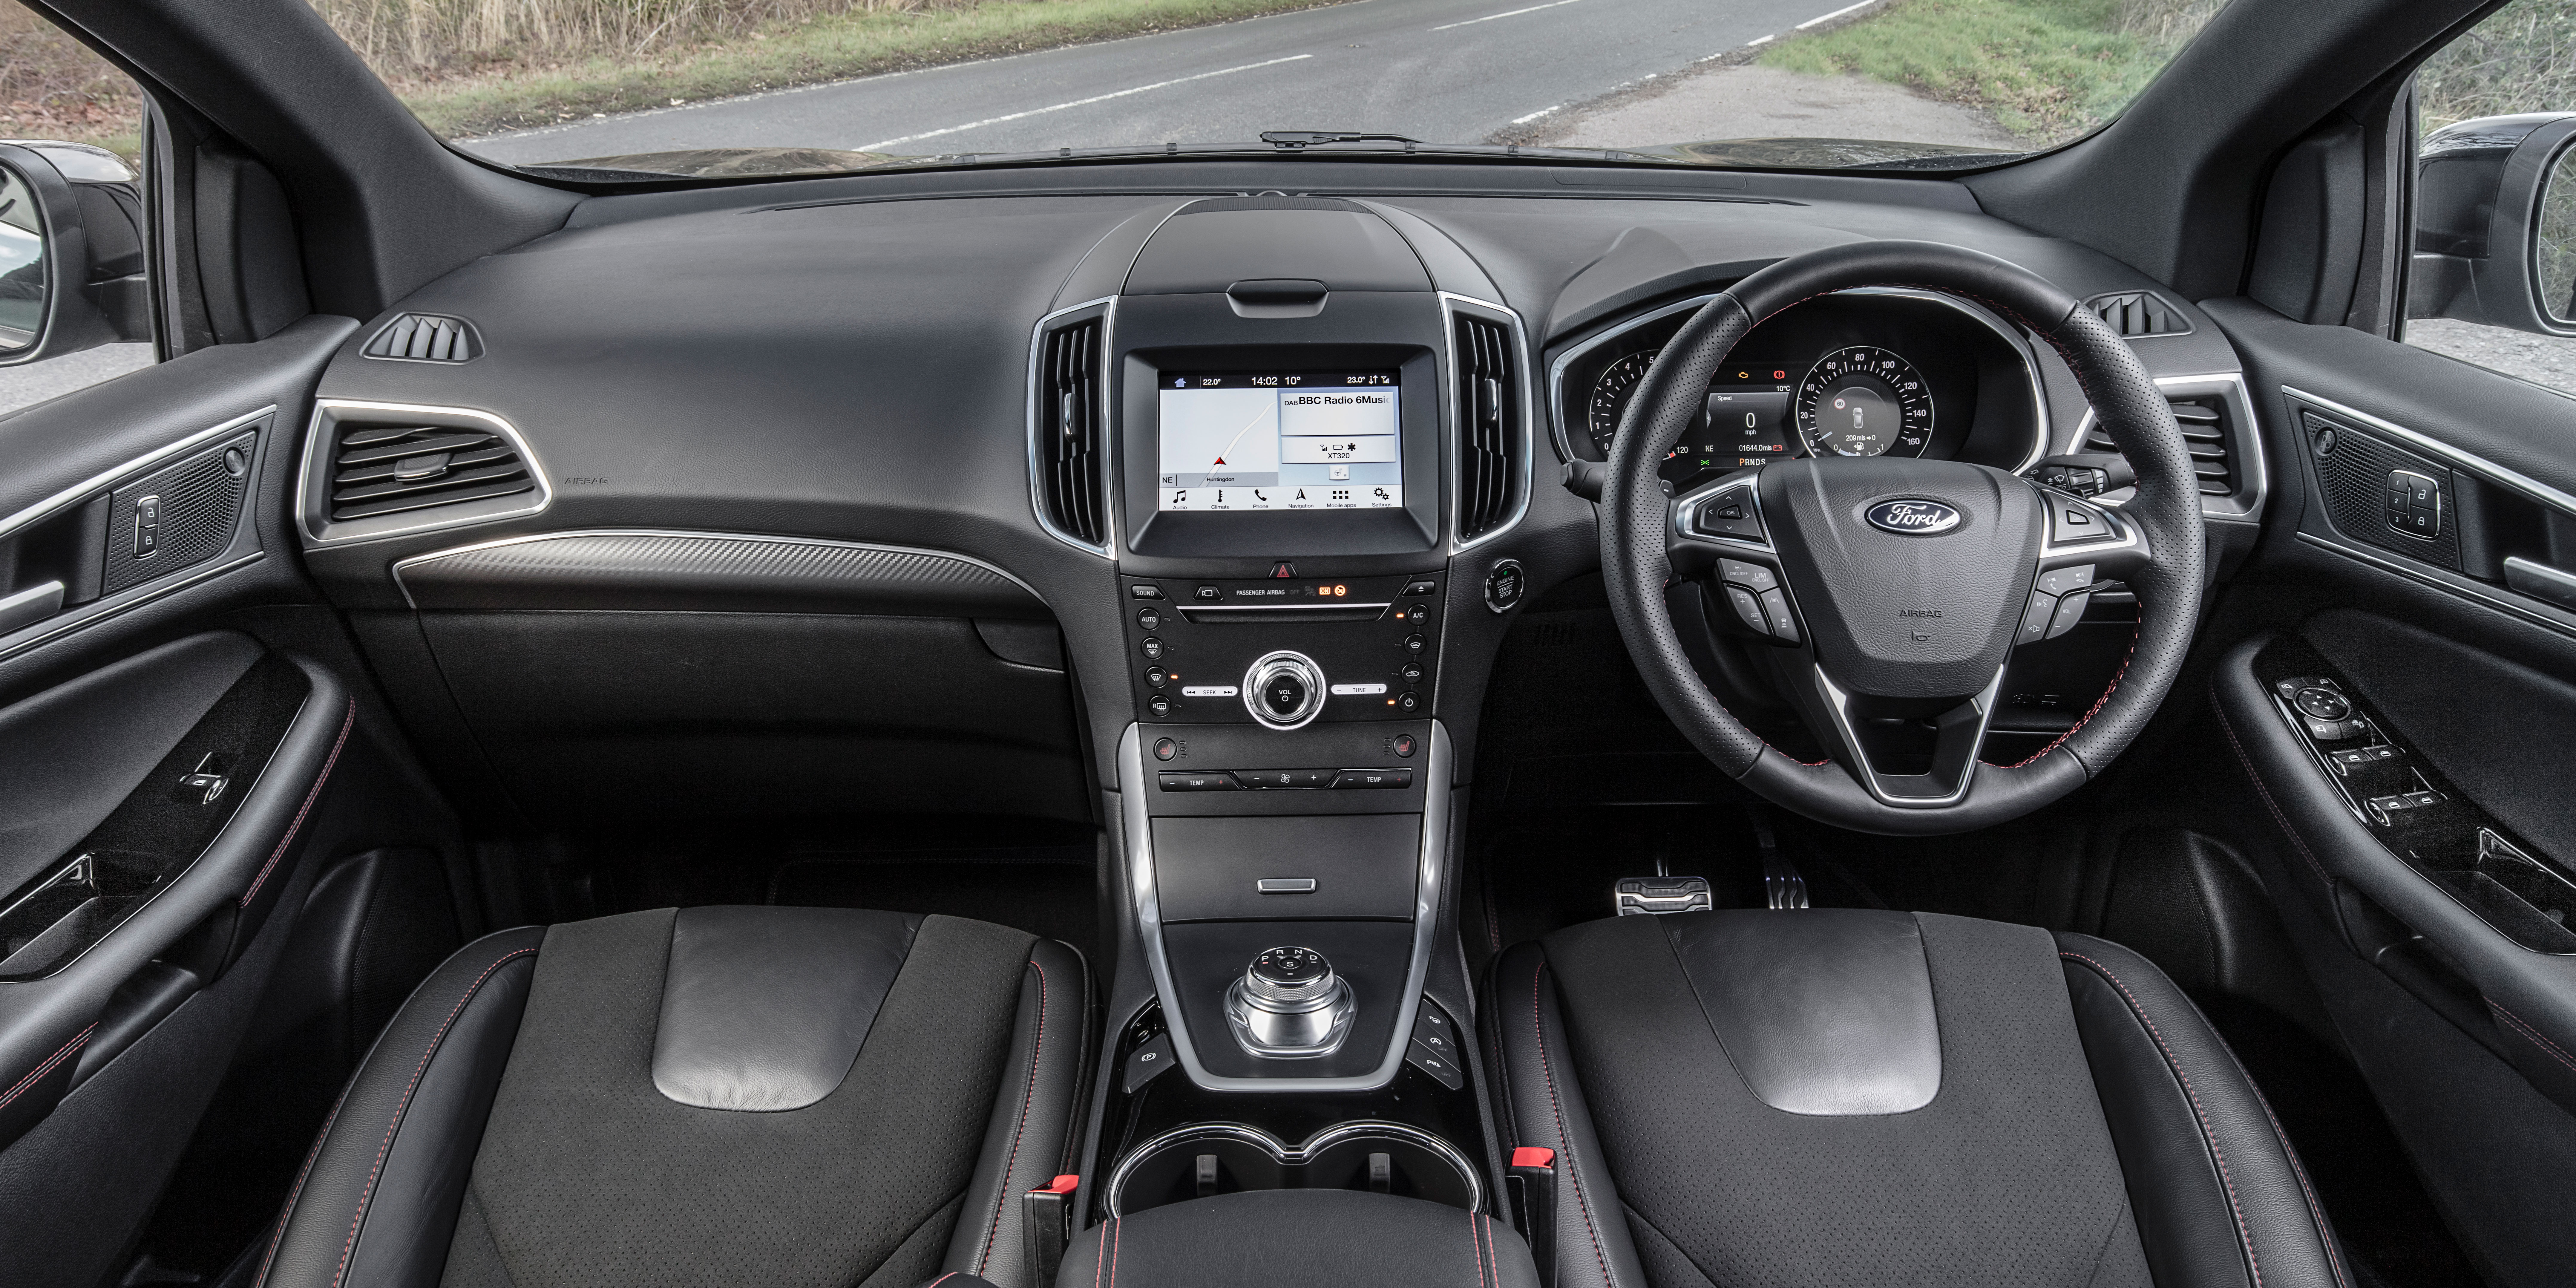 Ford Edge Interior & Infotainment | carwow